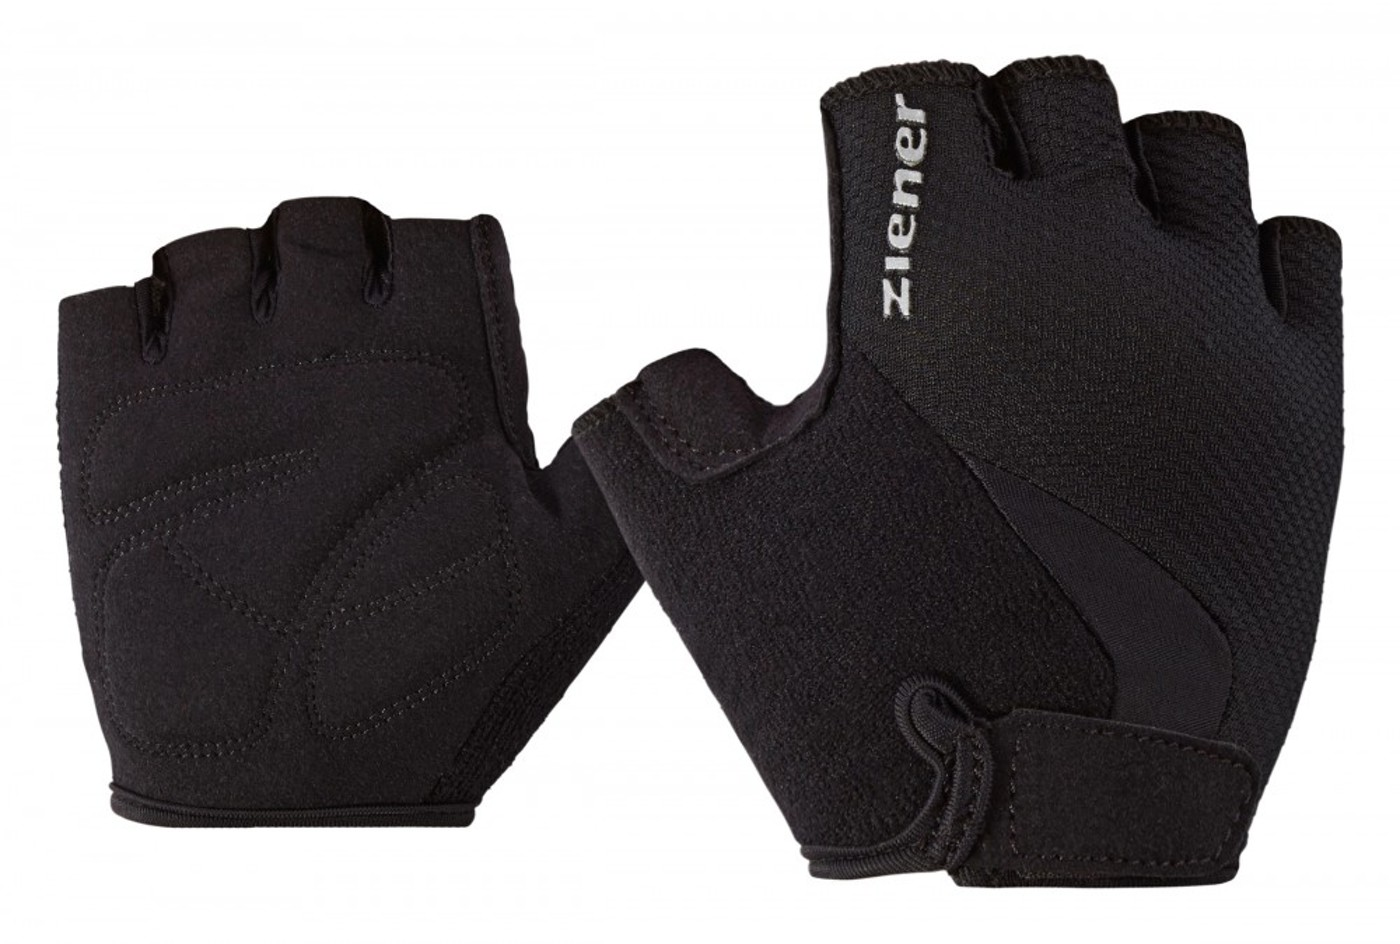 ZIENER CRIDO junior bike glove - Kinder